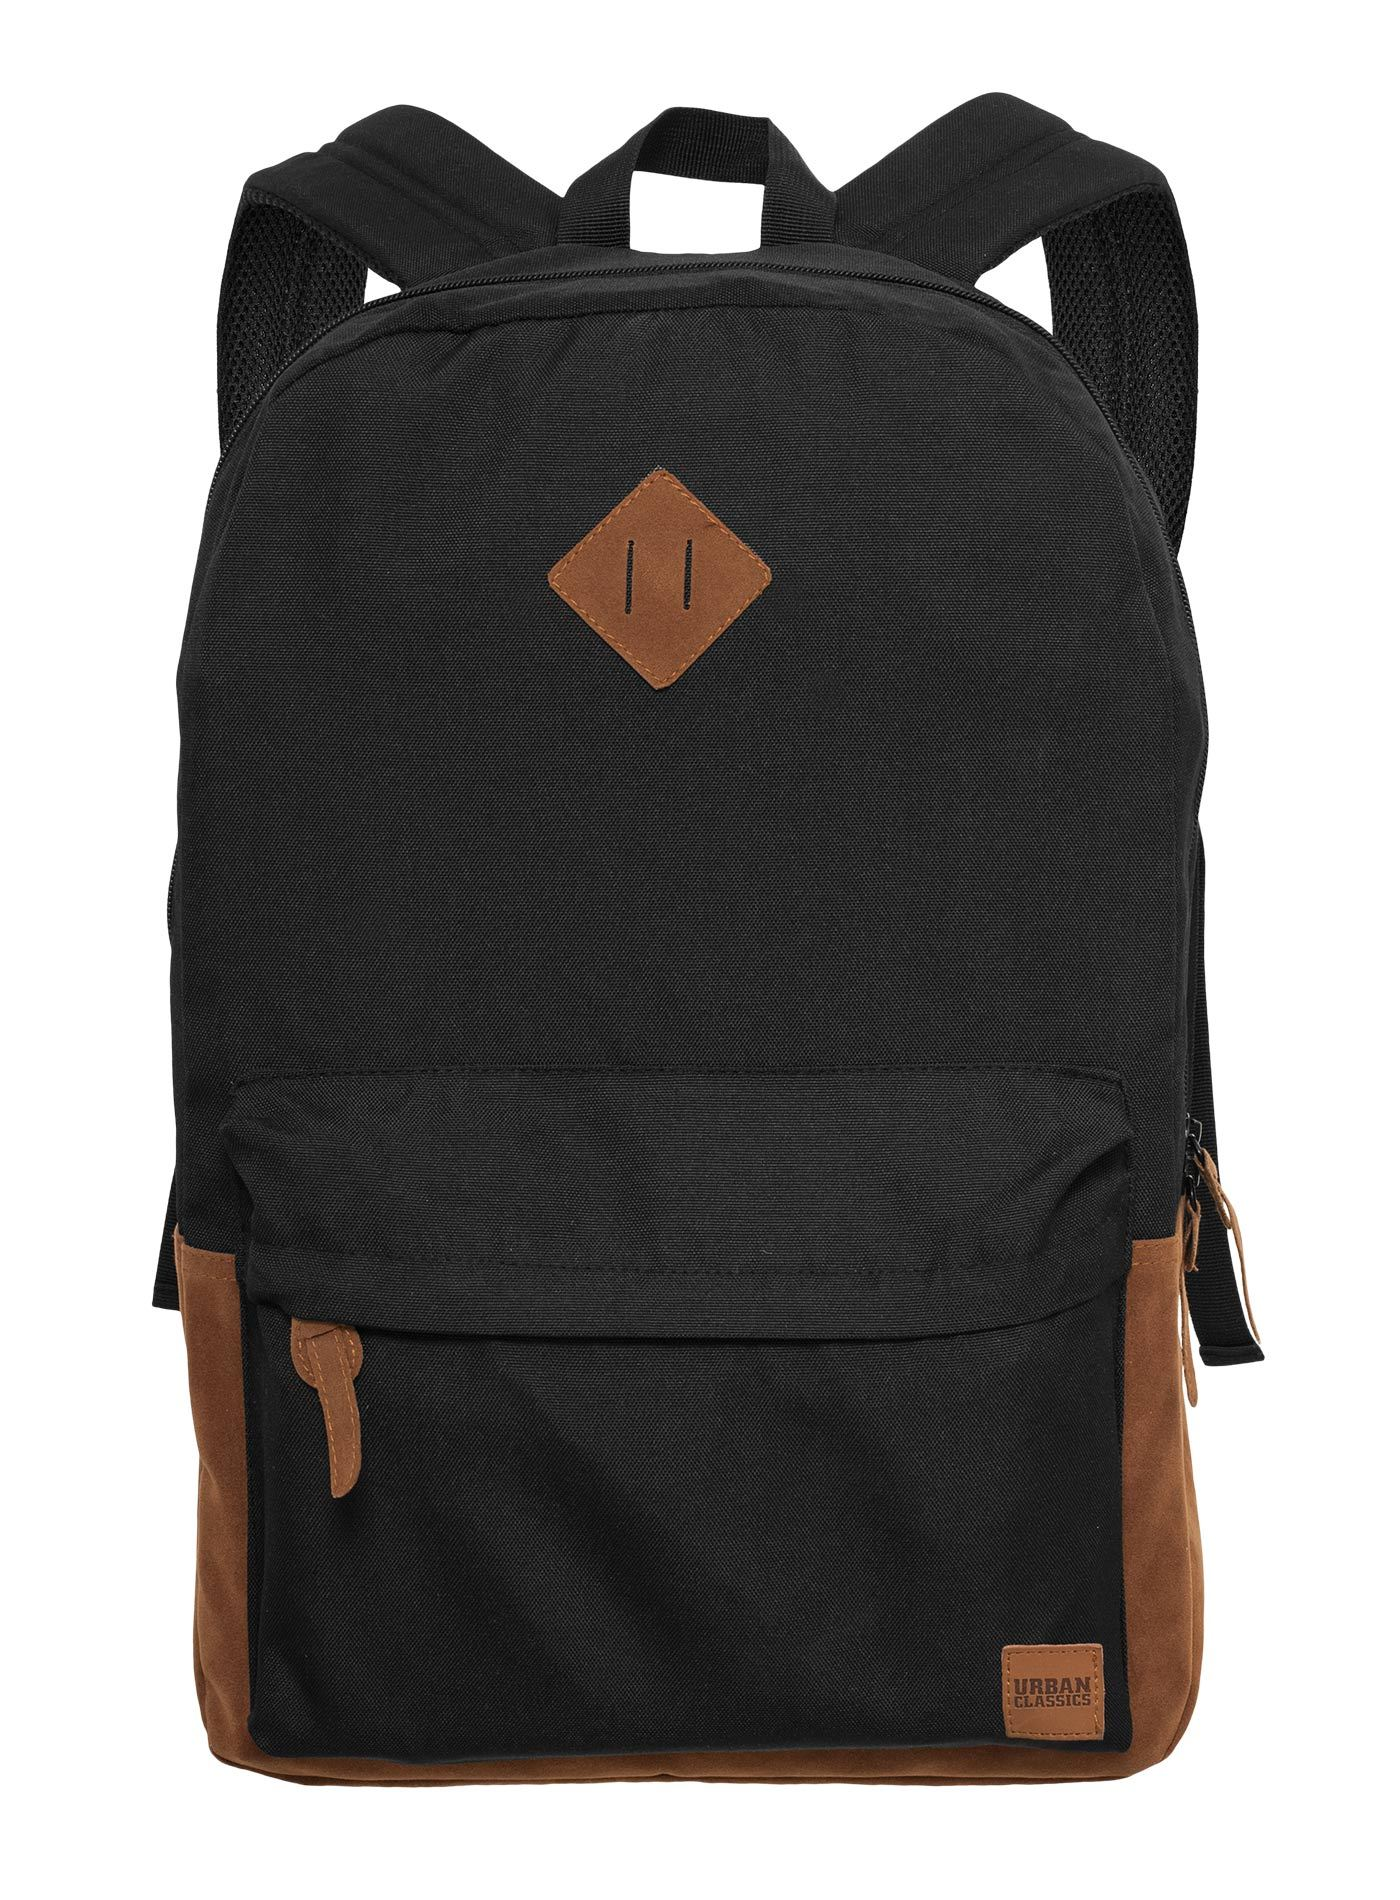 Рюкзак URBAN CLASSICS Leather Imitation Backpack Black/Brown